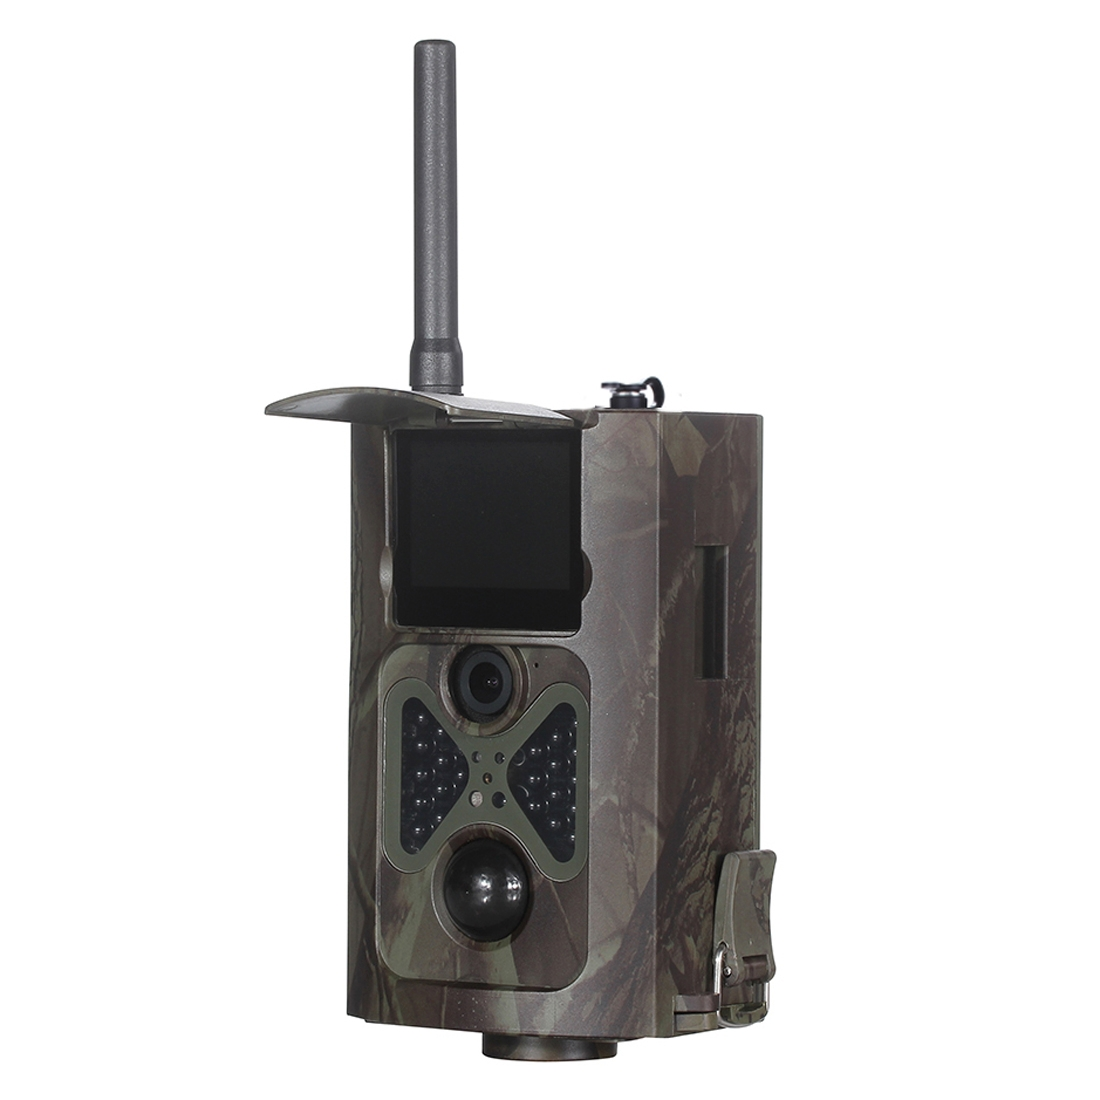 Suntek HC-550G 2.0 inch LCD 16MP Waterproof 3G MMS IR Night Vision Security Hunting Trail Camera, 120 Degree Wide Angle